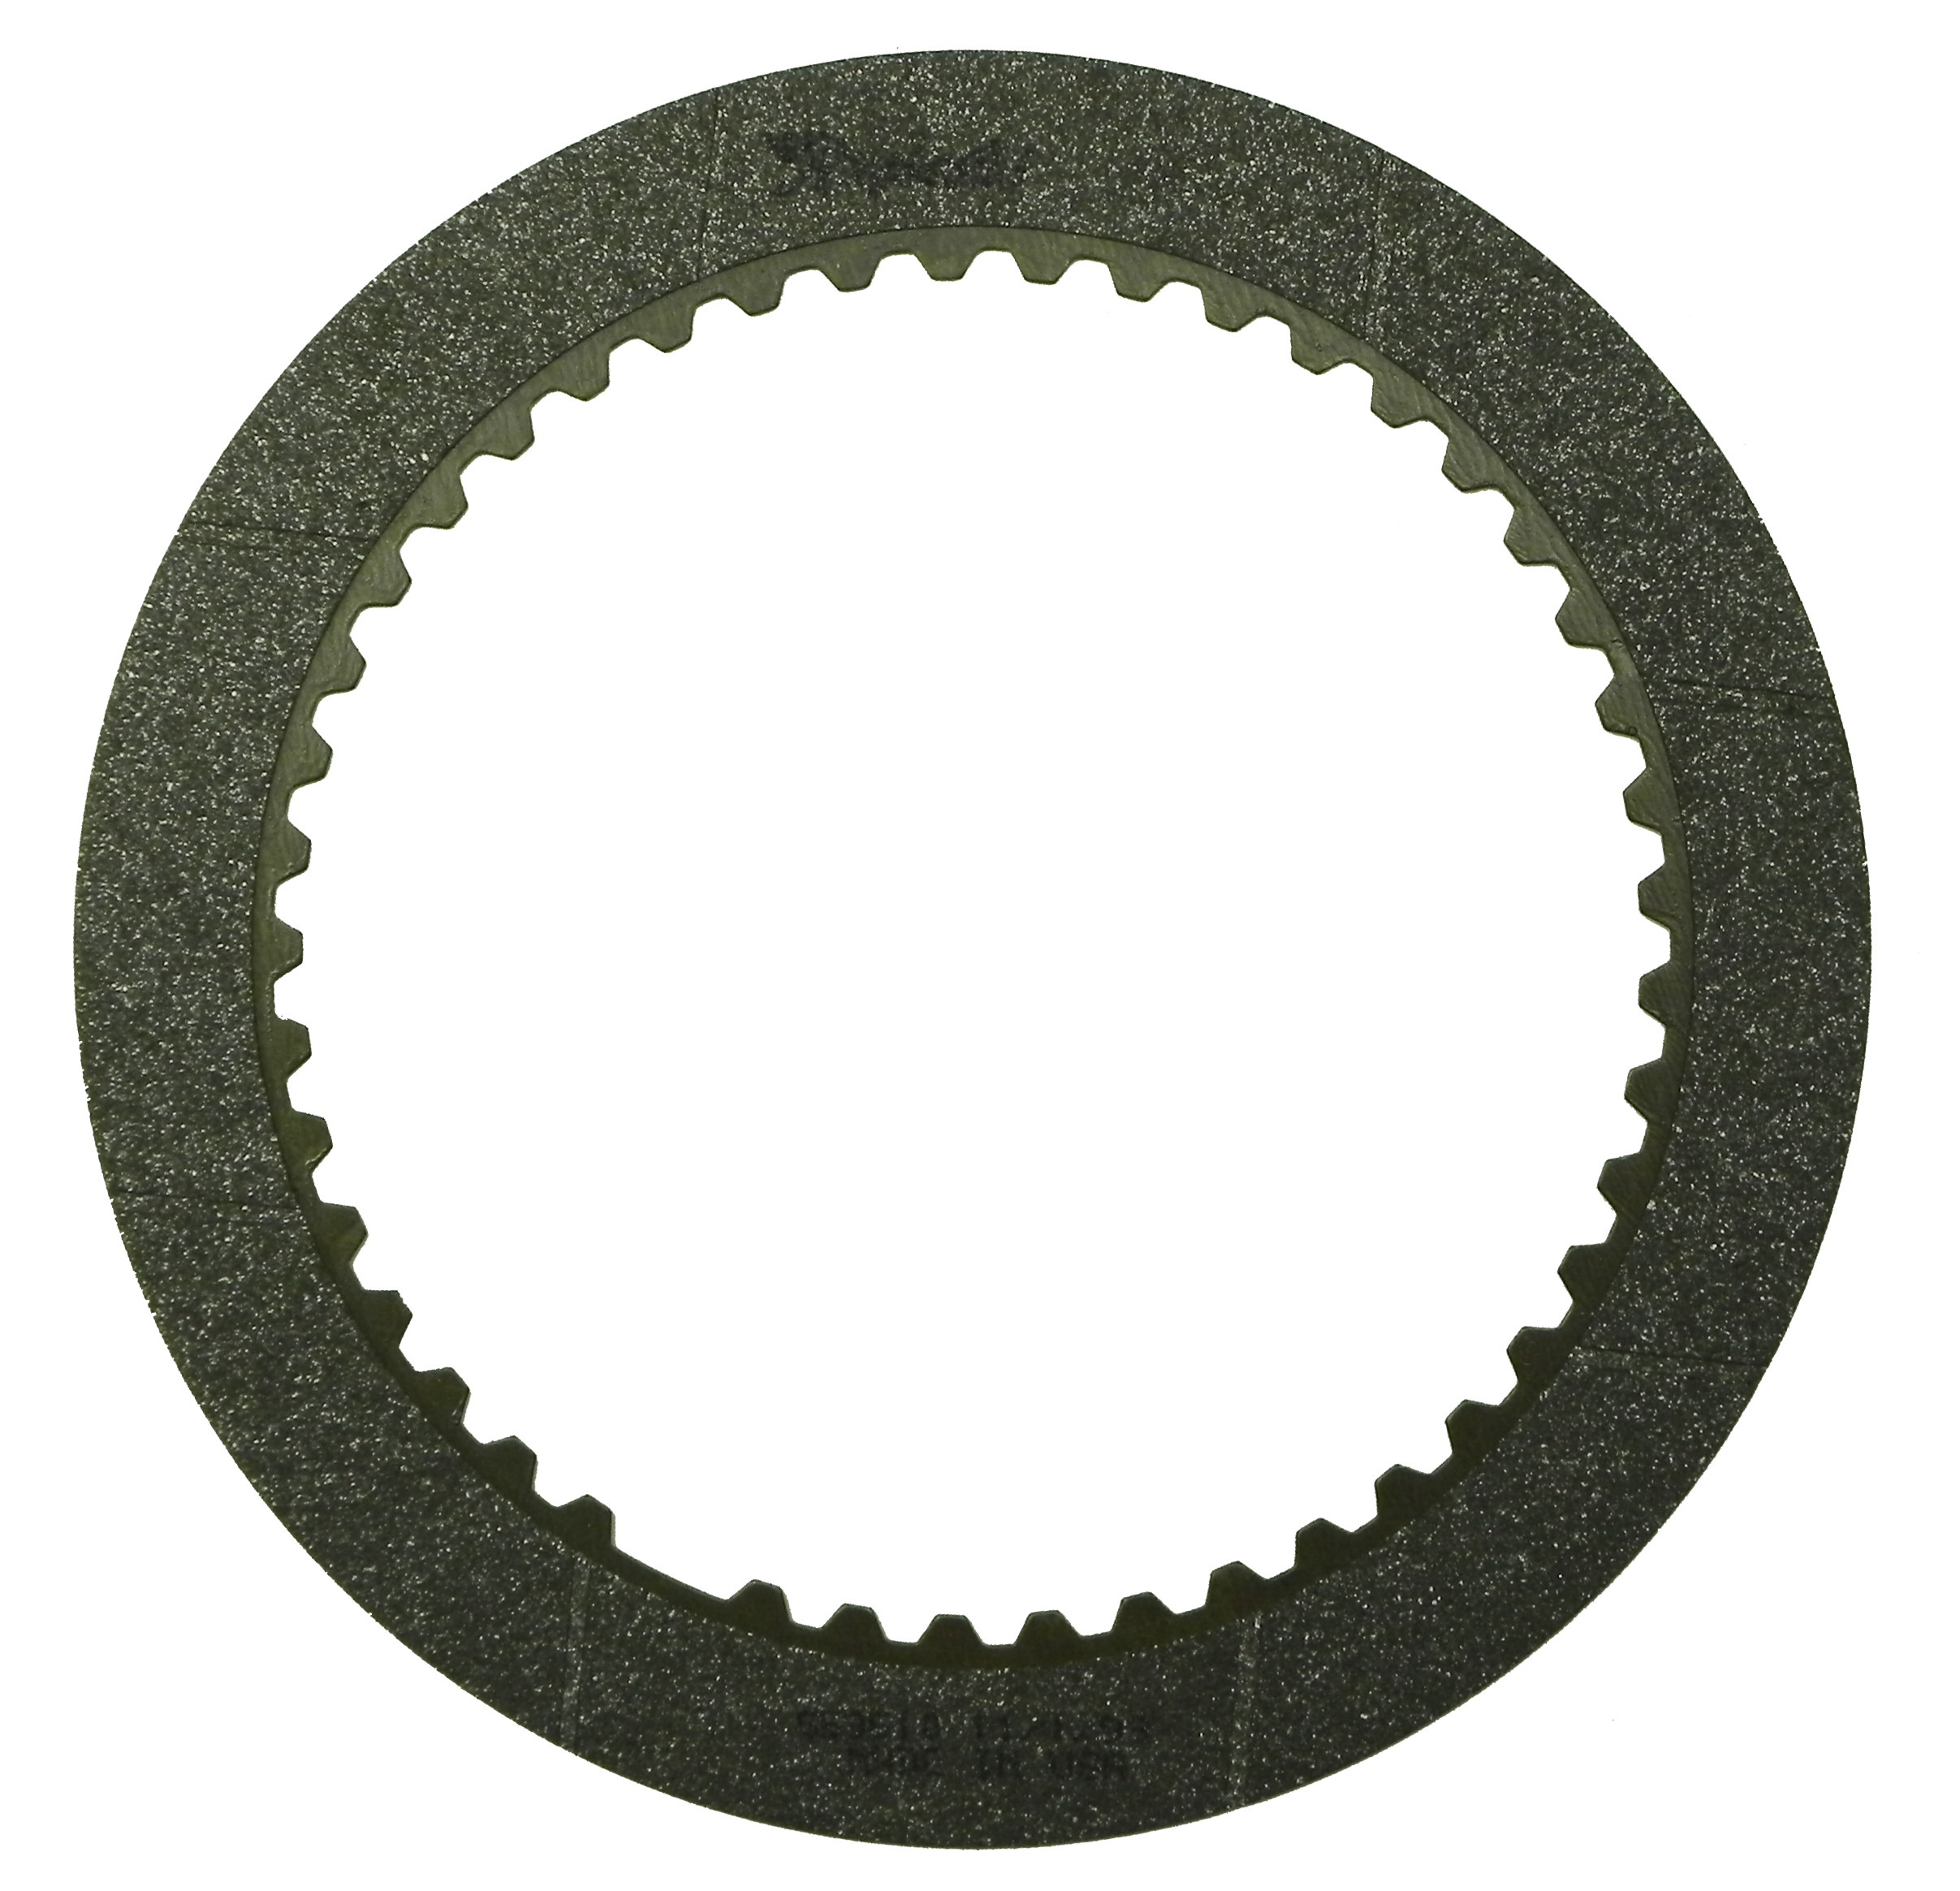 R559510 | 1960-2004 Friction Clutch Plate Graphitic Forward Graphitic